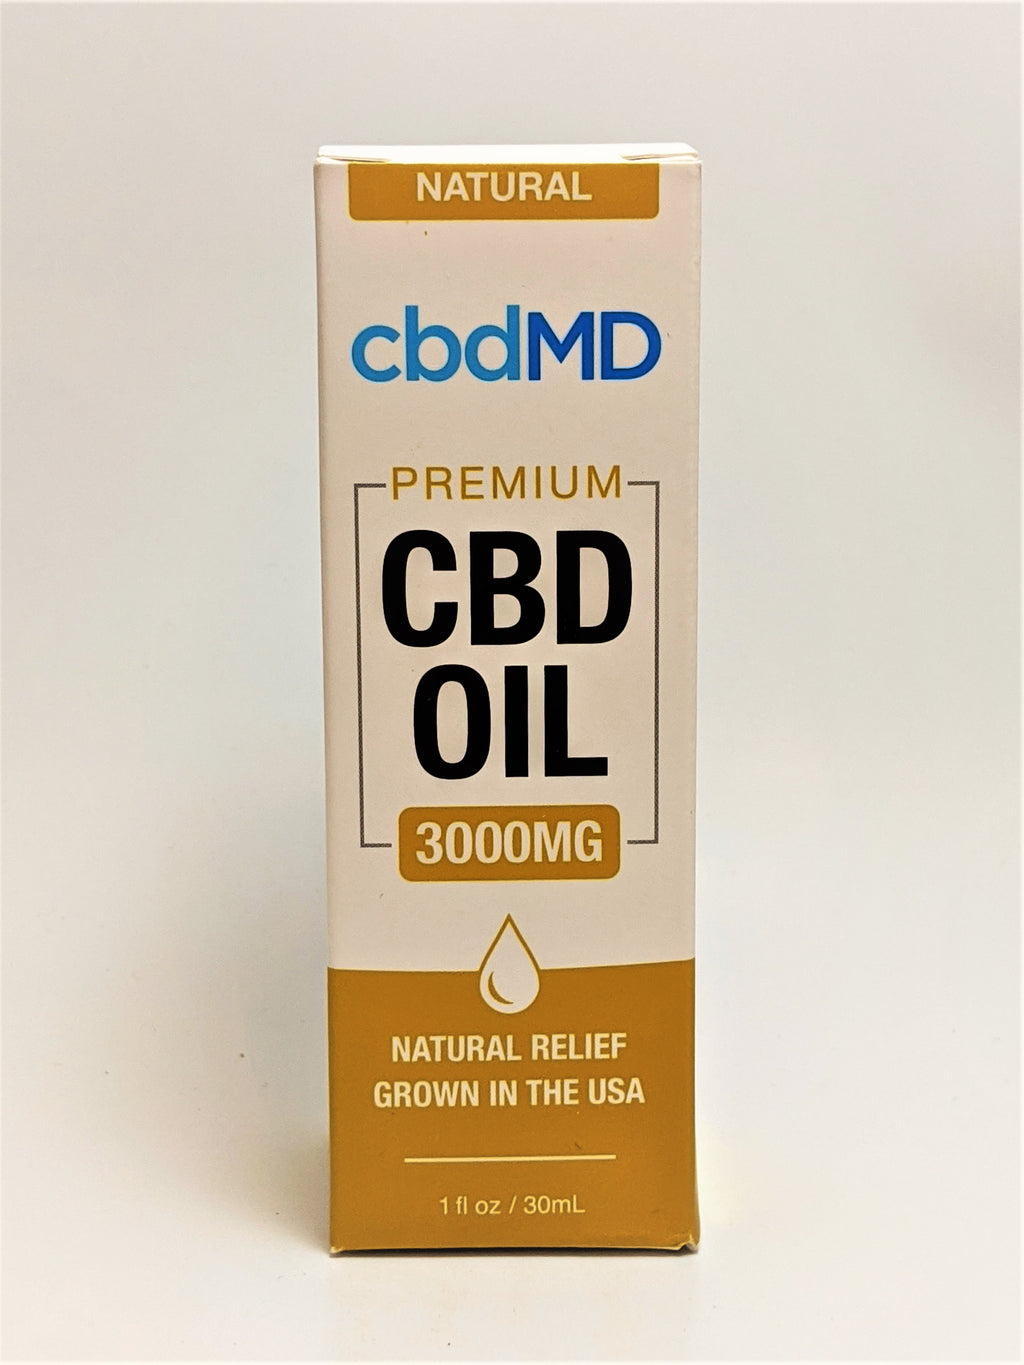 cbdMD 3000 mg Oil - Natural Flavor - CBD Central